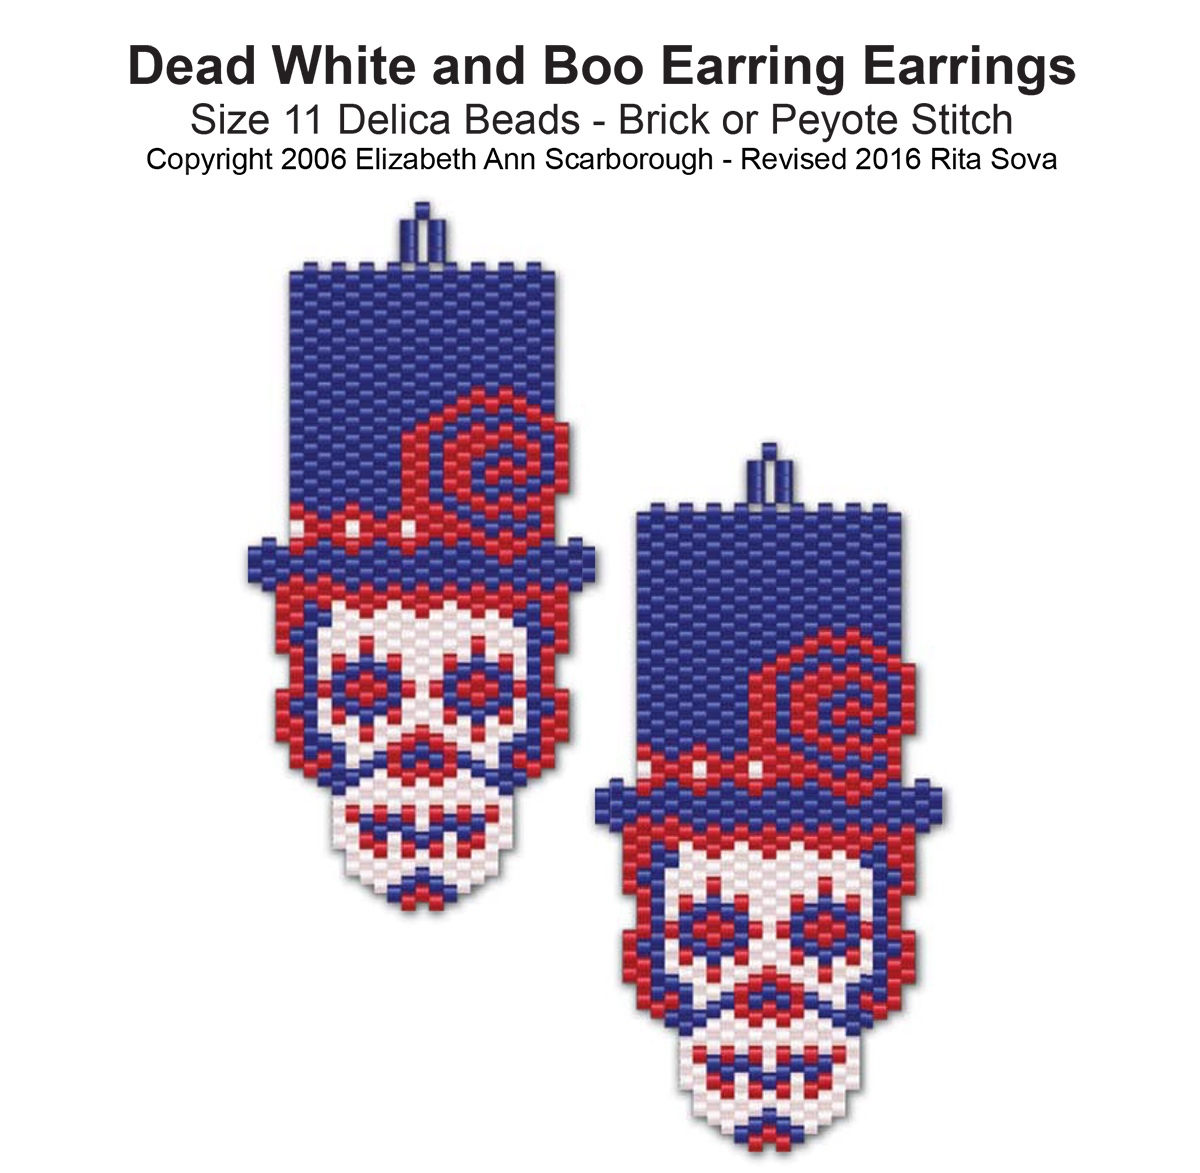 Dead White and Boo Earrings